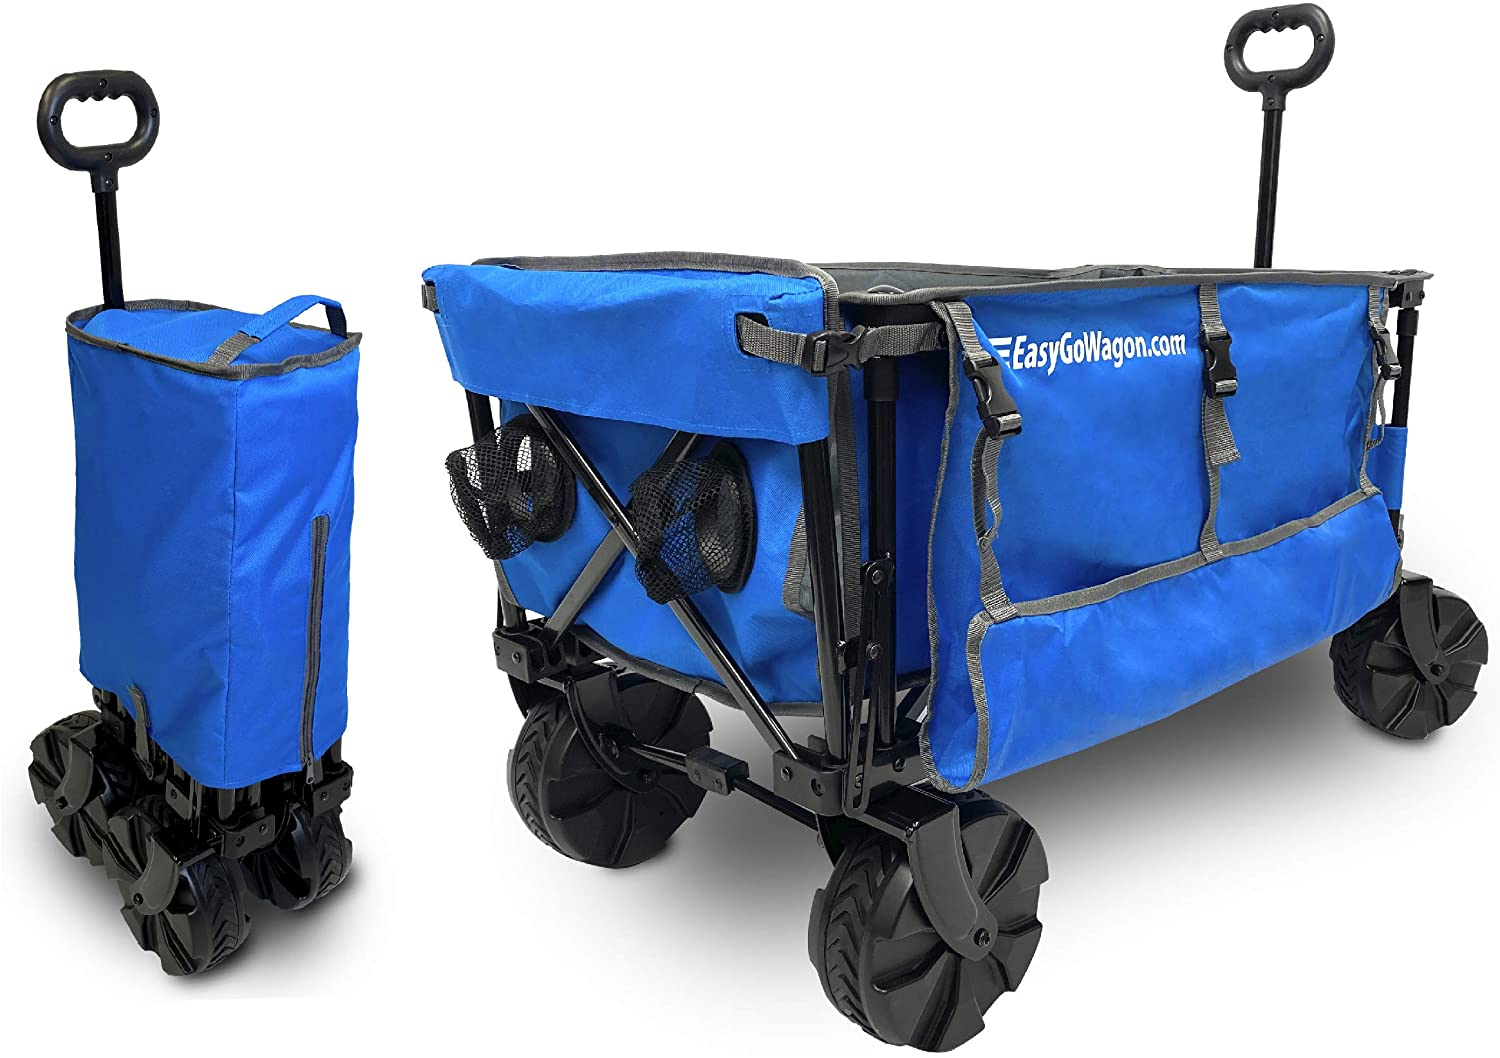 EasyGoProducts Folding Heavy Duty Beach Wagon